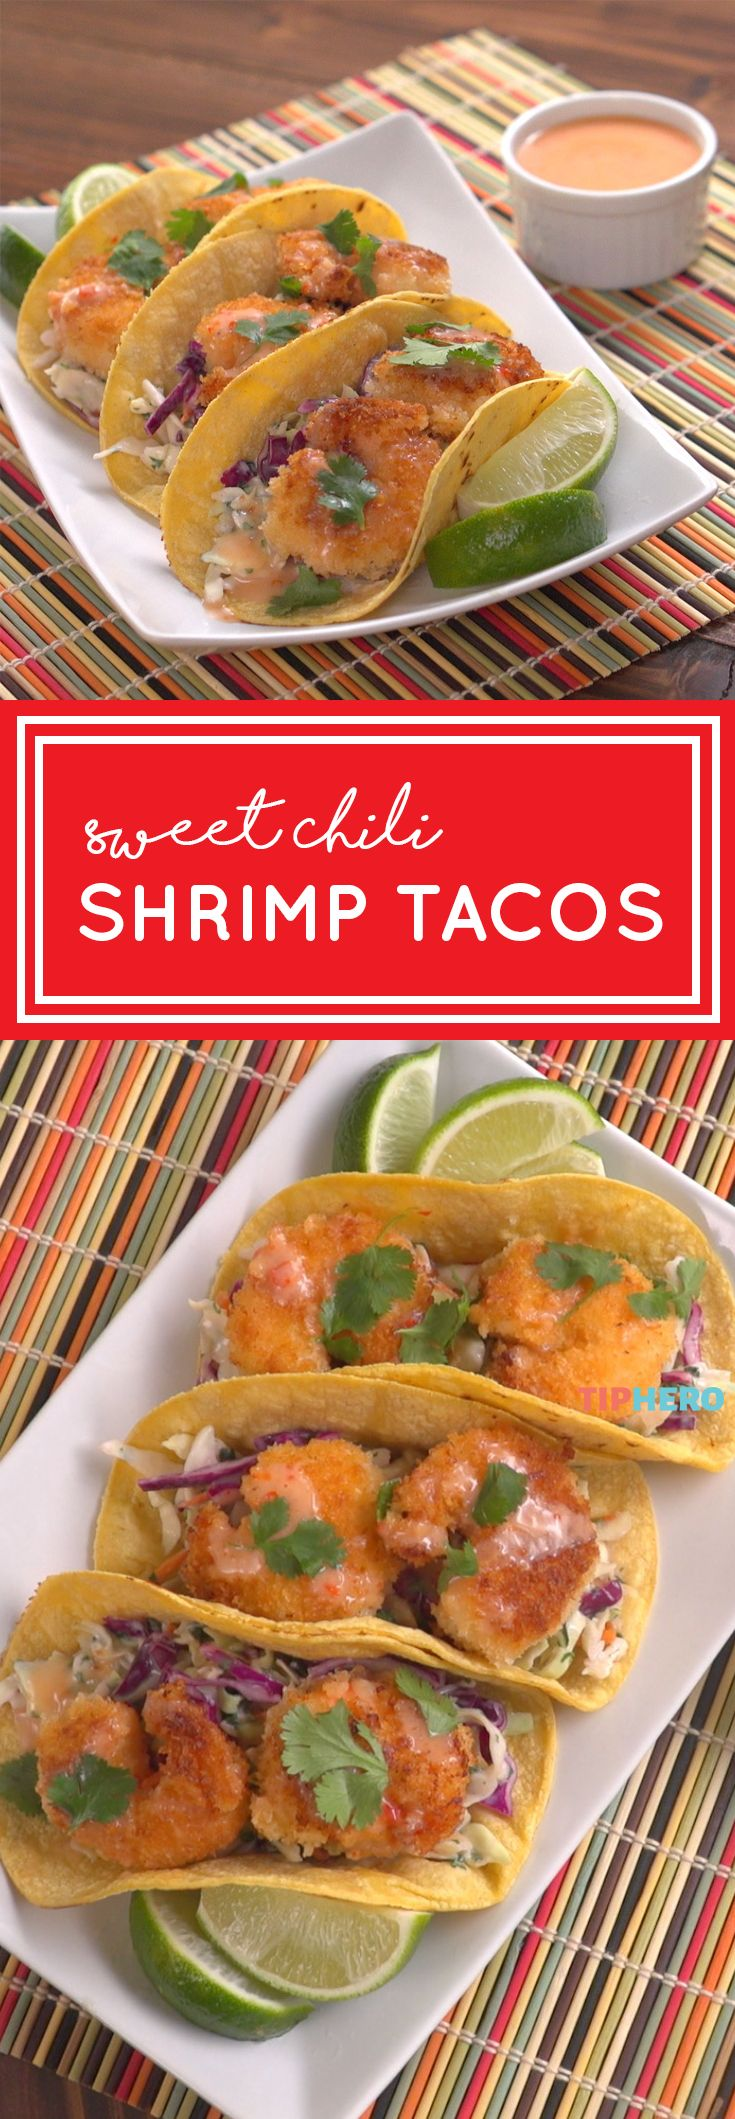 Mmm-mmm sweet chili shrimp tacos! Take your tacos to the next level with this flavorful recipe. Click for the recipe and how-to video.  #tacotuesday #tacos #shrimp #seafood #familydinner #dinnertime #yum #recipe #recipes